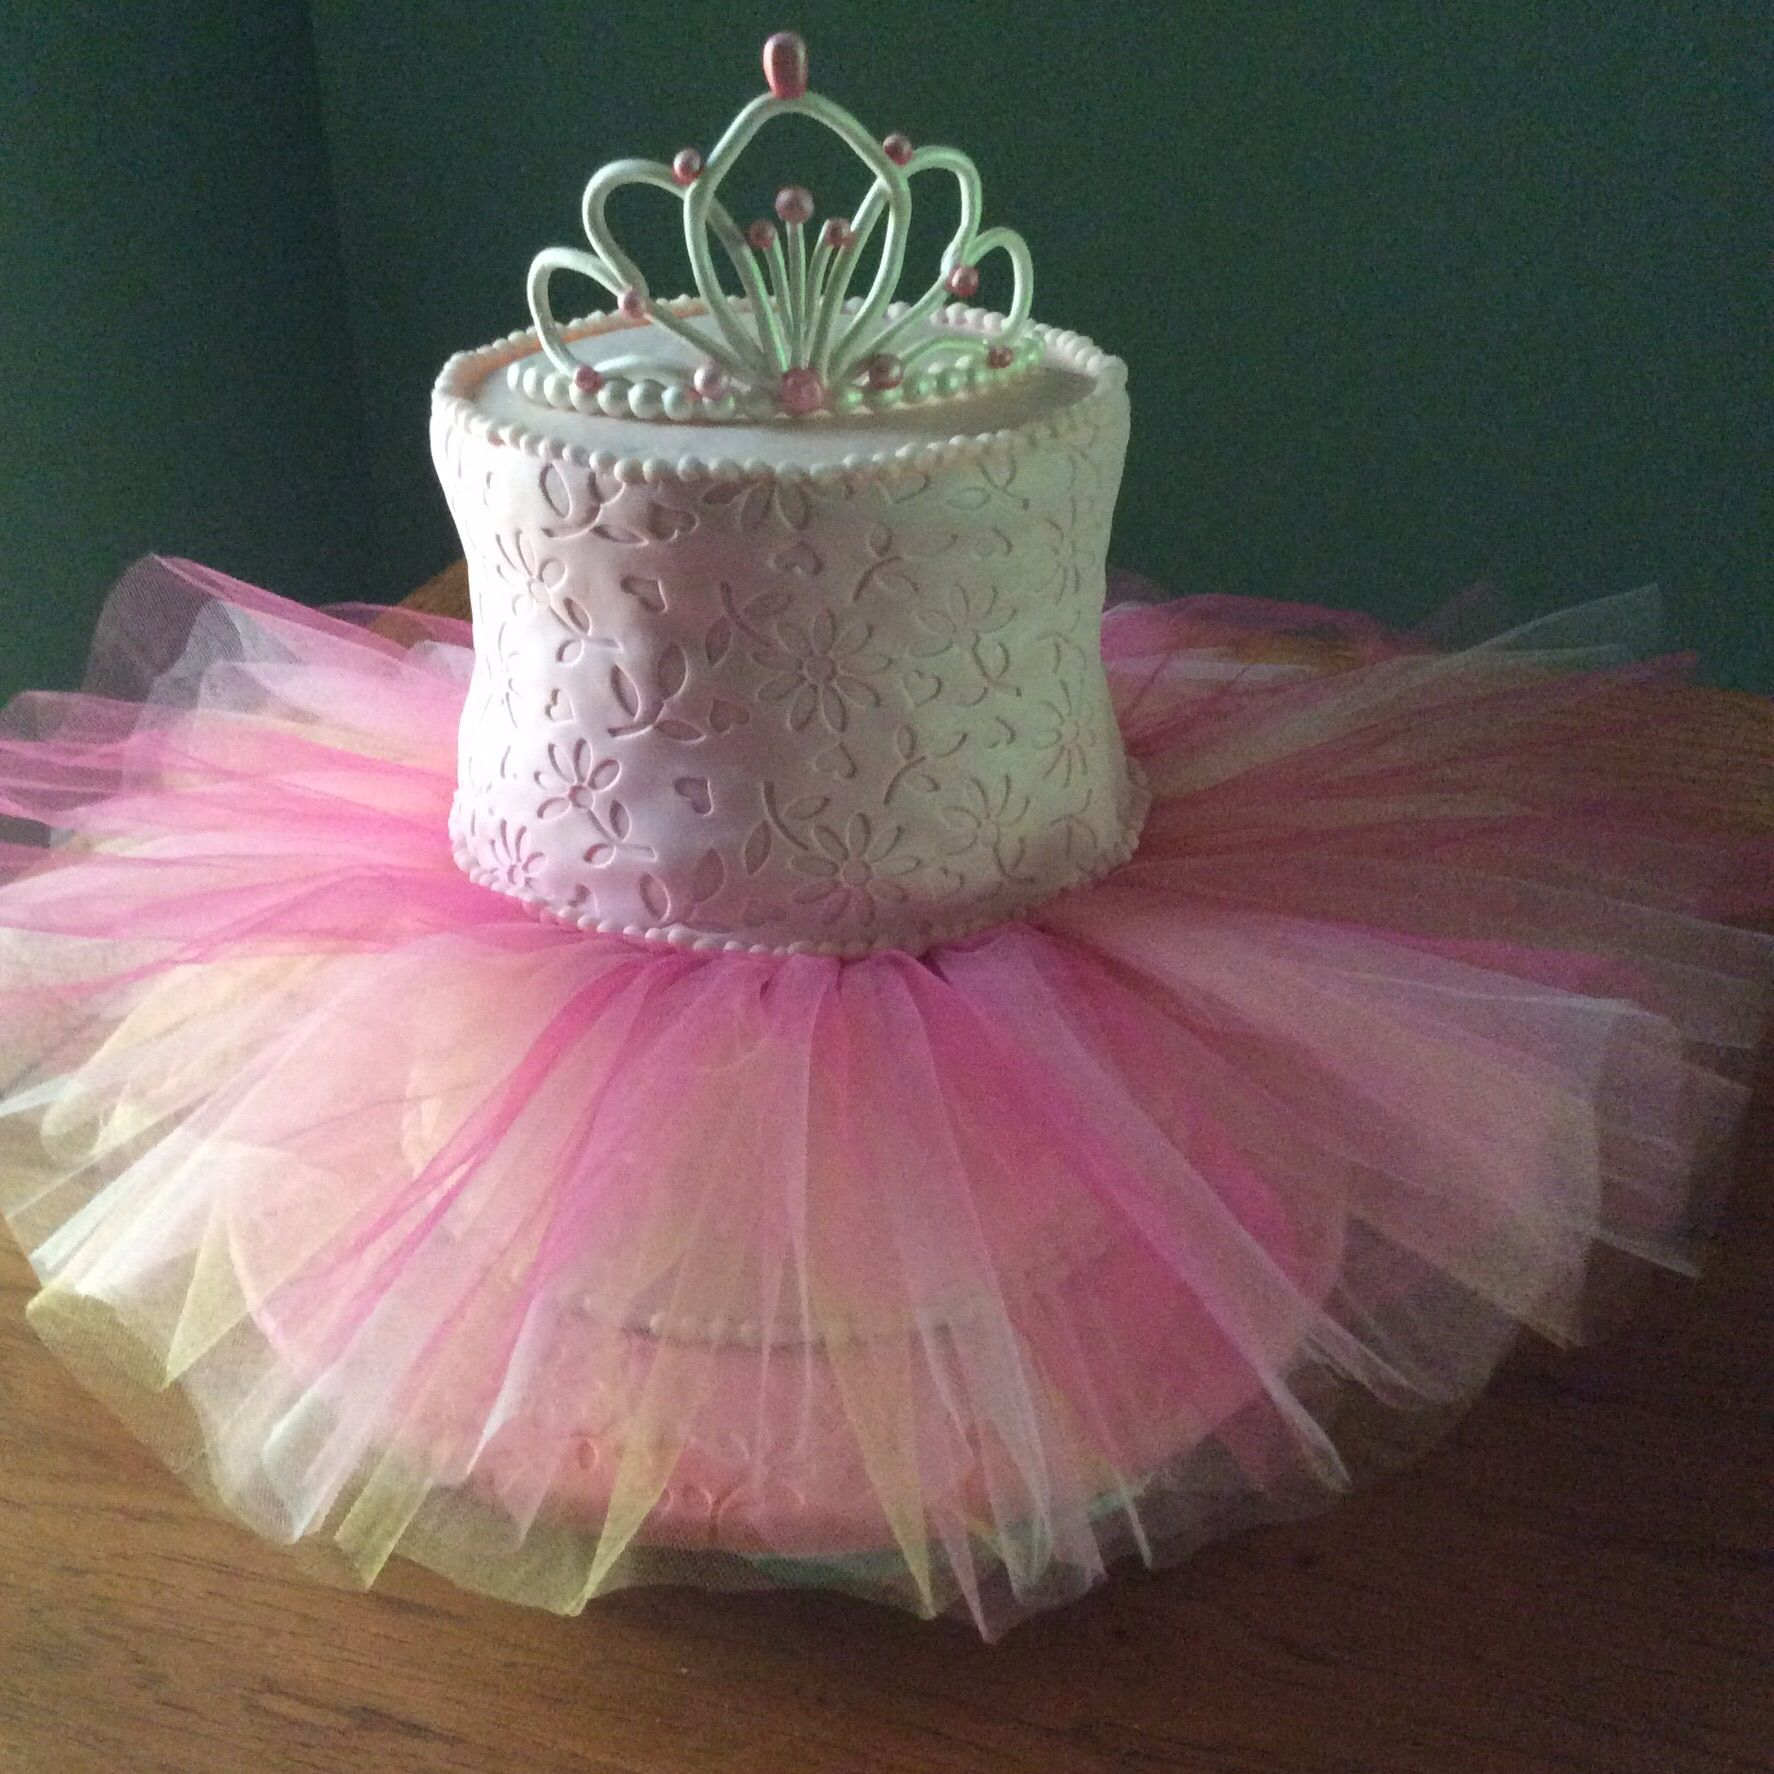 cake decorating template to a ballerina shoe cakes pinterest